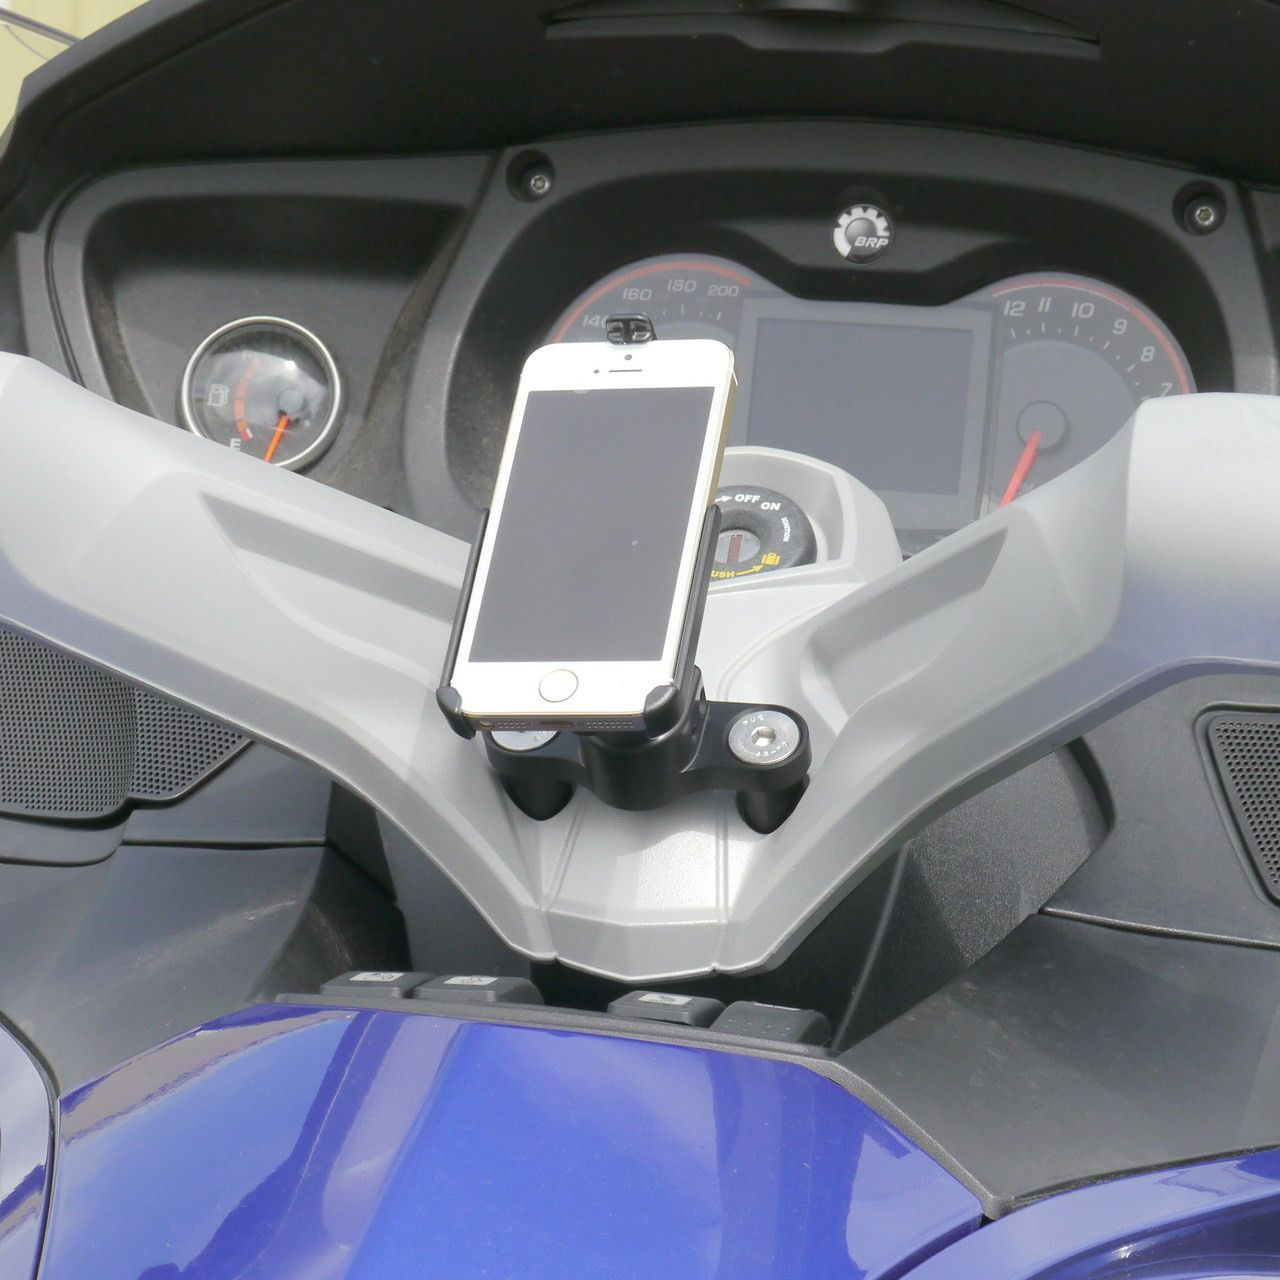 Ecaddy diamond motorcycle iphone mount for can am spyder center handlebar the